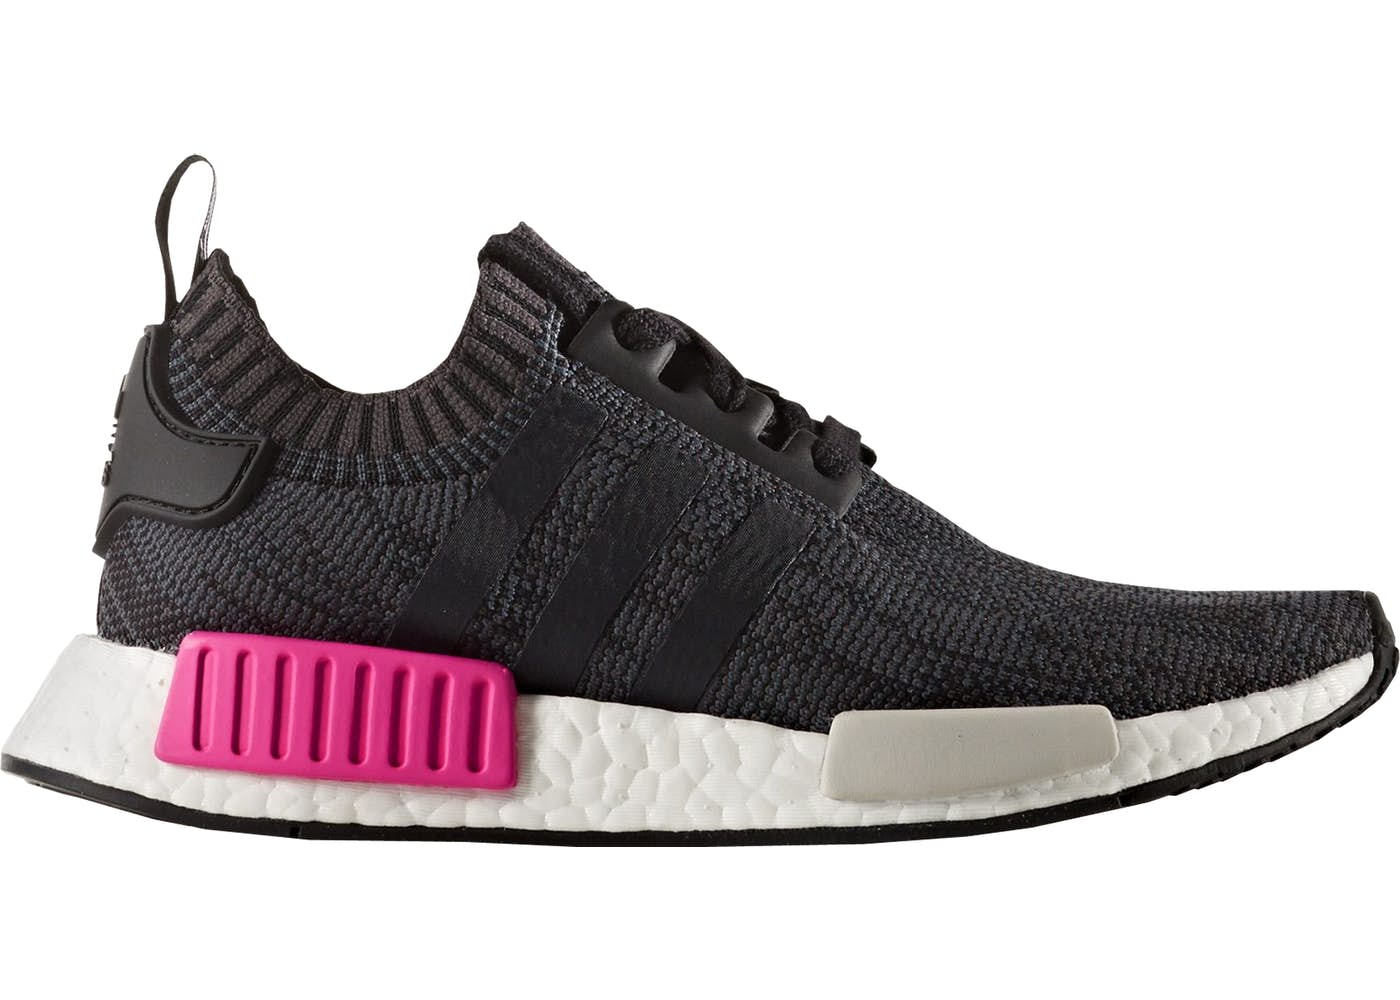 adidas nmd r1 essential pink w. Black Bedroom Furniture Sets. Home Design Ideas